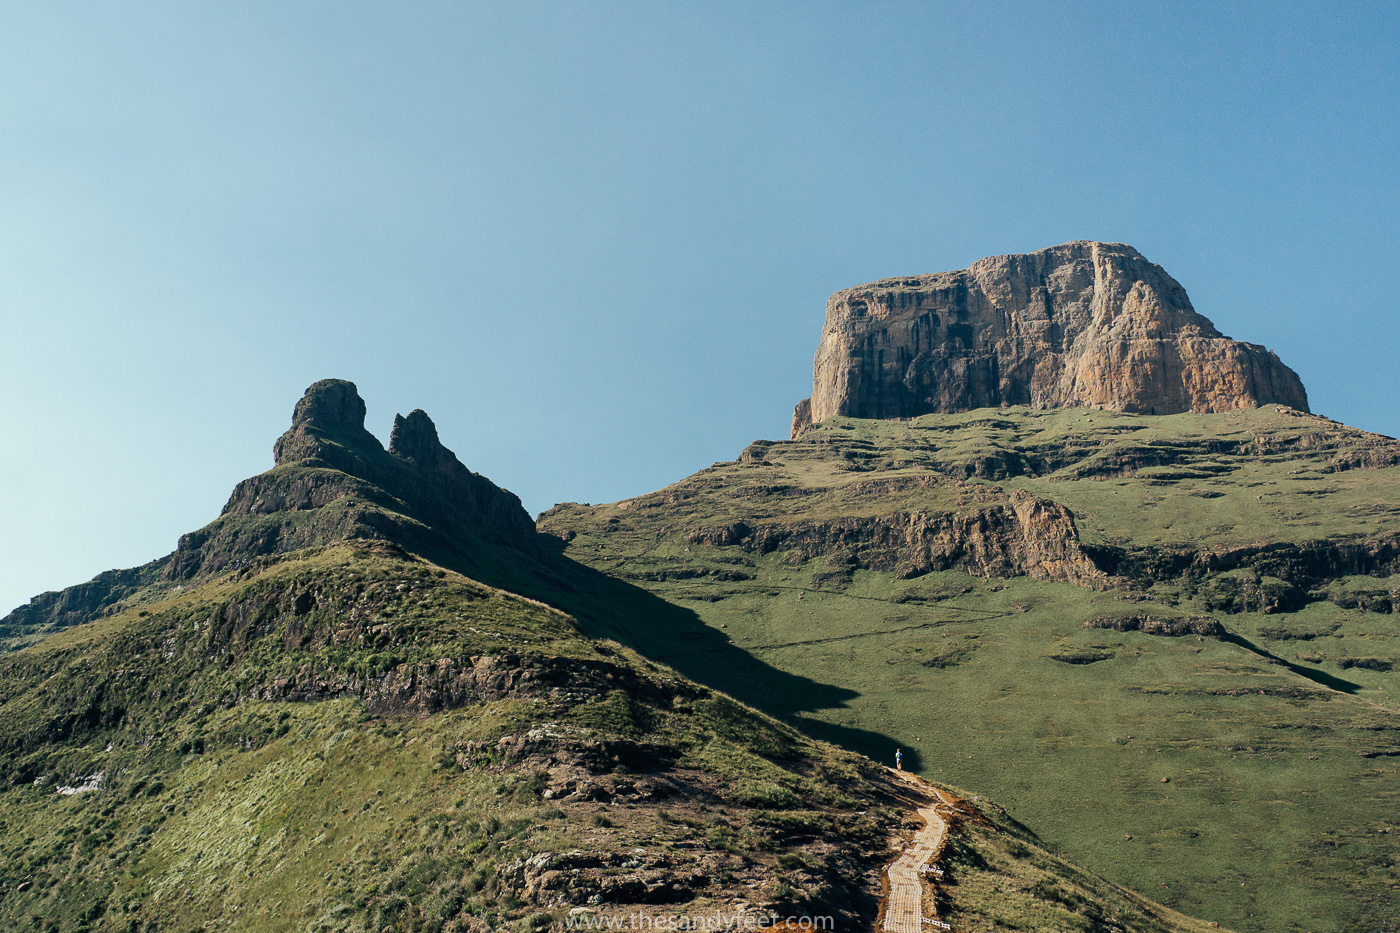 Hiking The Amphitheatre Trail In The Drakensberg | The Amphitheatre Hike To Tugela Falls